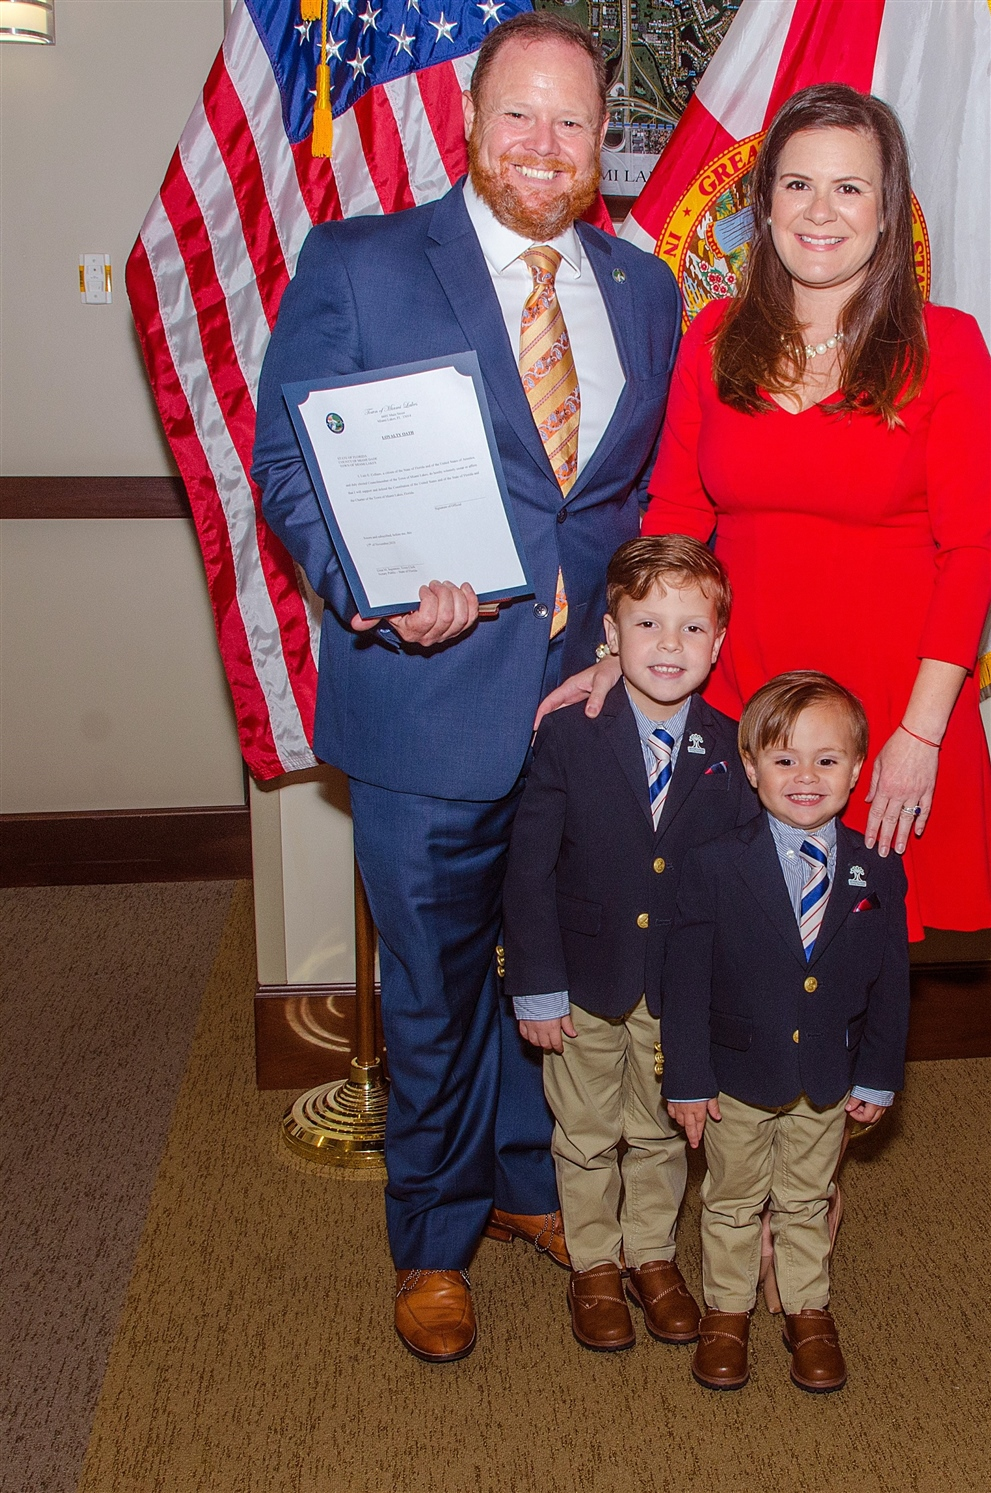 Shown are Vice Mayor Luis Collazo with his wife Clarisell De Cardenas who is the town's director of communications, and their sons, Lucas, 5, and Cody, 3.   Photos courtesy of the Town of Miami Lakes.